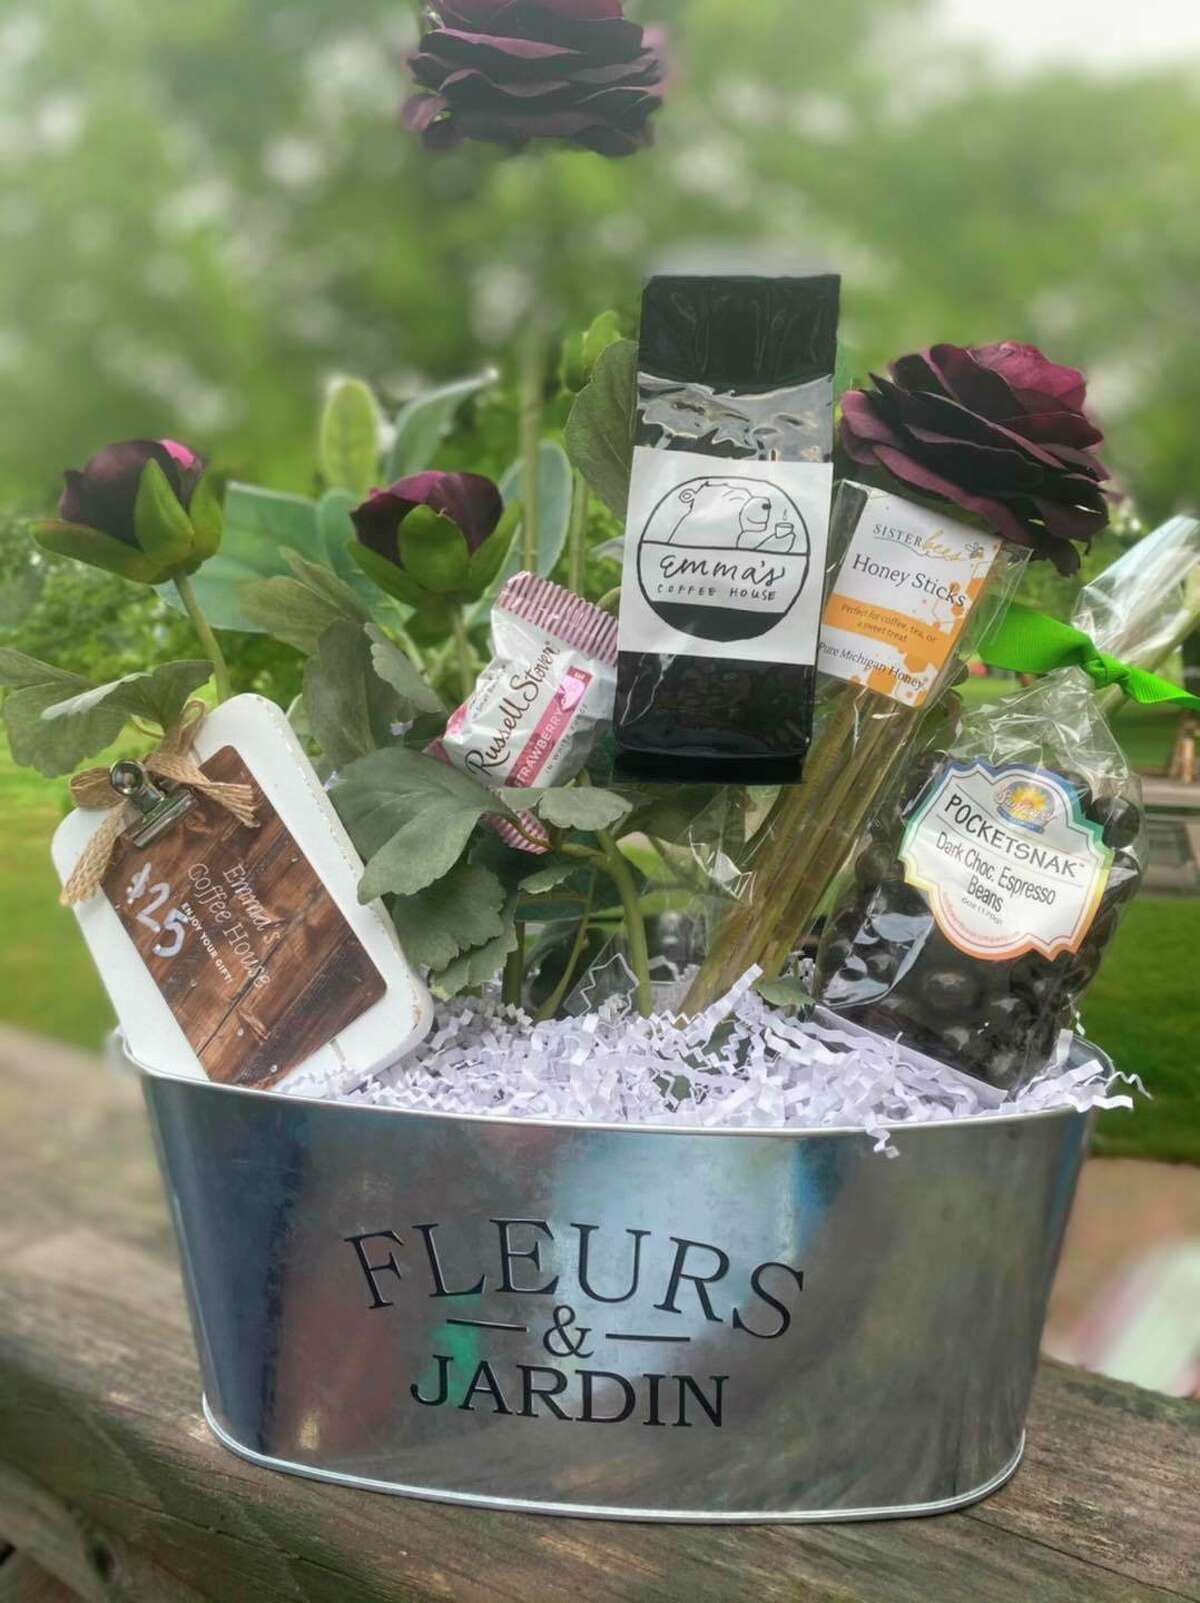 This gift basket is one of several items up for grabs at Sunday's fundraiser to benefit the victims of a tornado that hit Port Austin (Courtesy Photo)